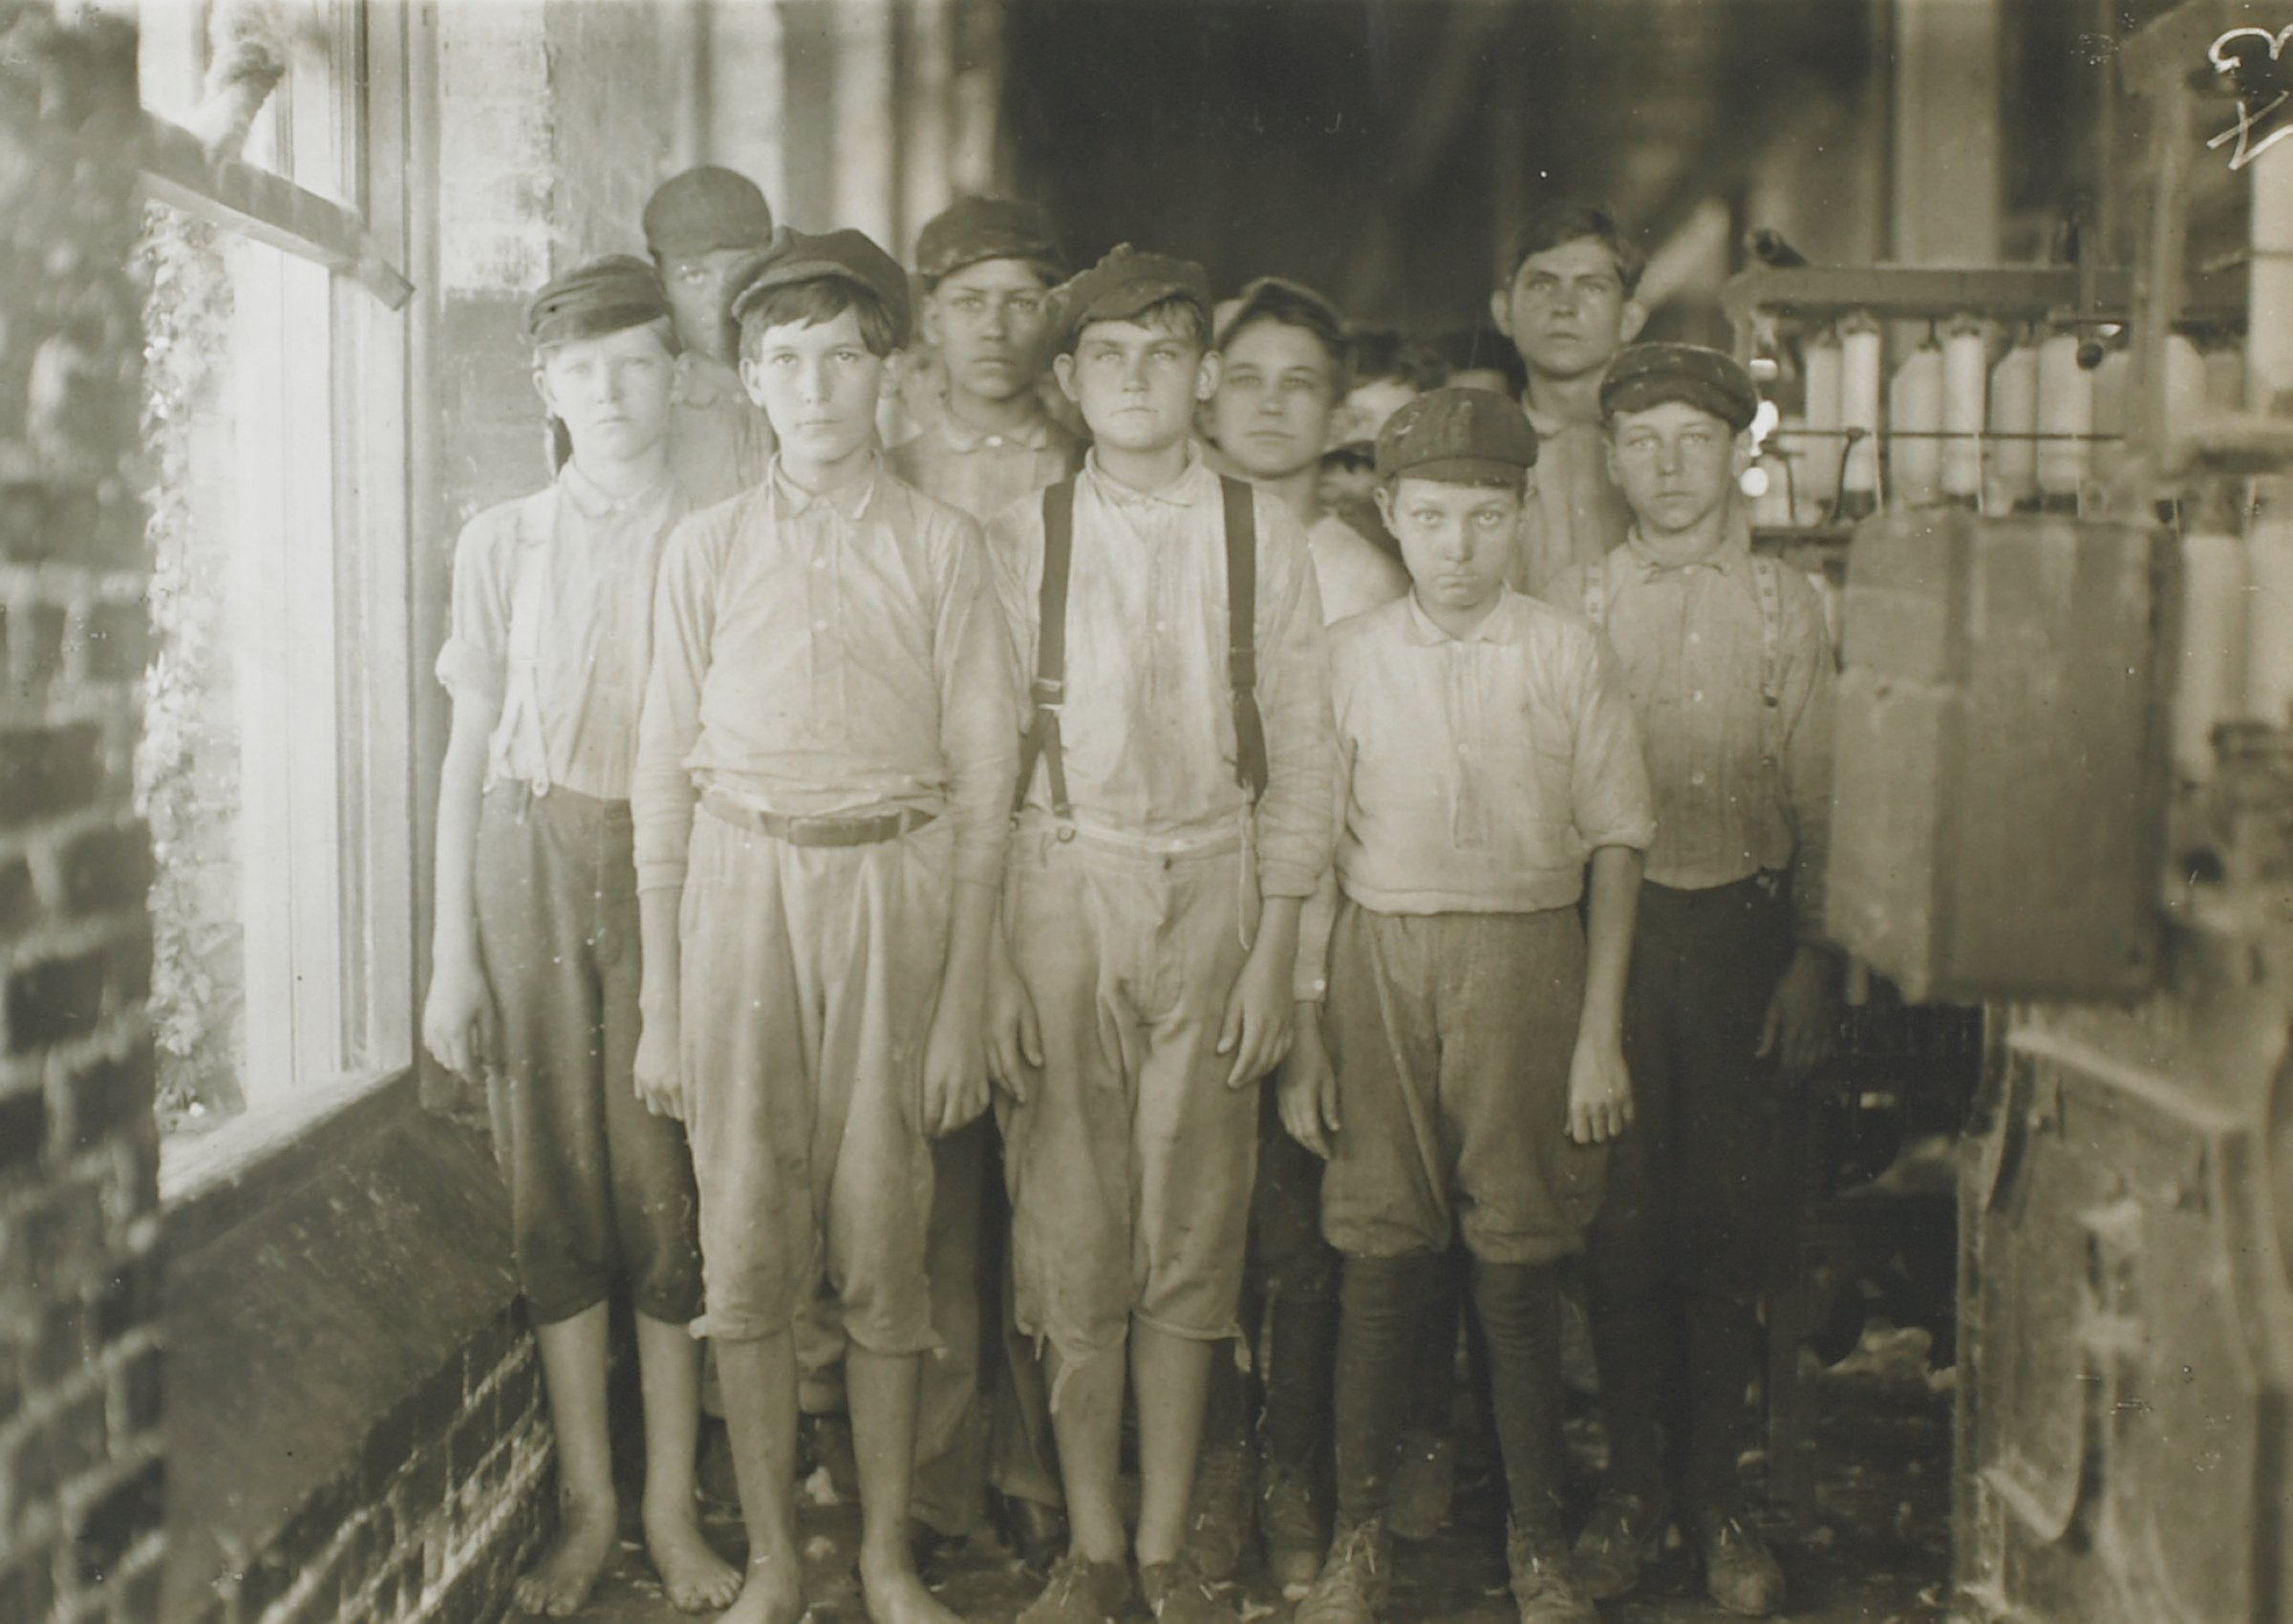 In this black and white photograph, a group of young men and boys stand in a mill or factory to the right of a brick wall and a brightly lit window. Nine people are clearly visible. To the right of the group of boys are machines displaying bobbins loaded with spooled thread.